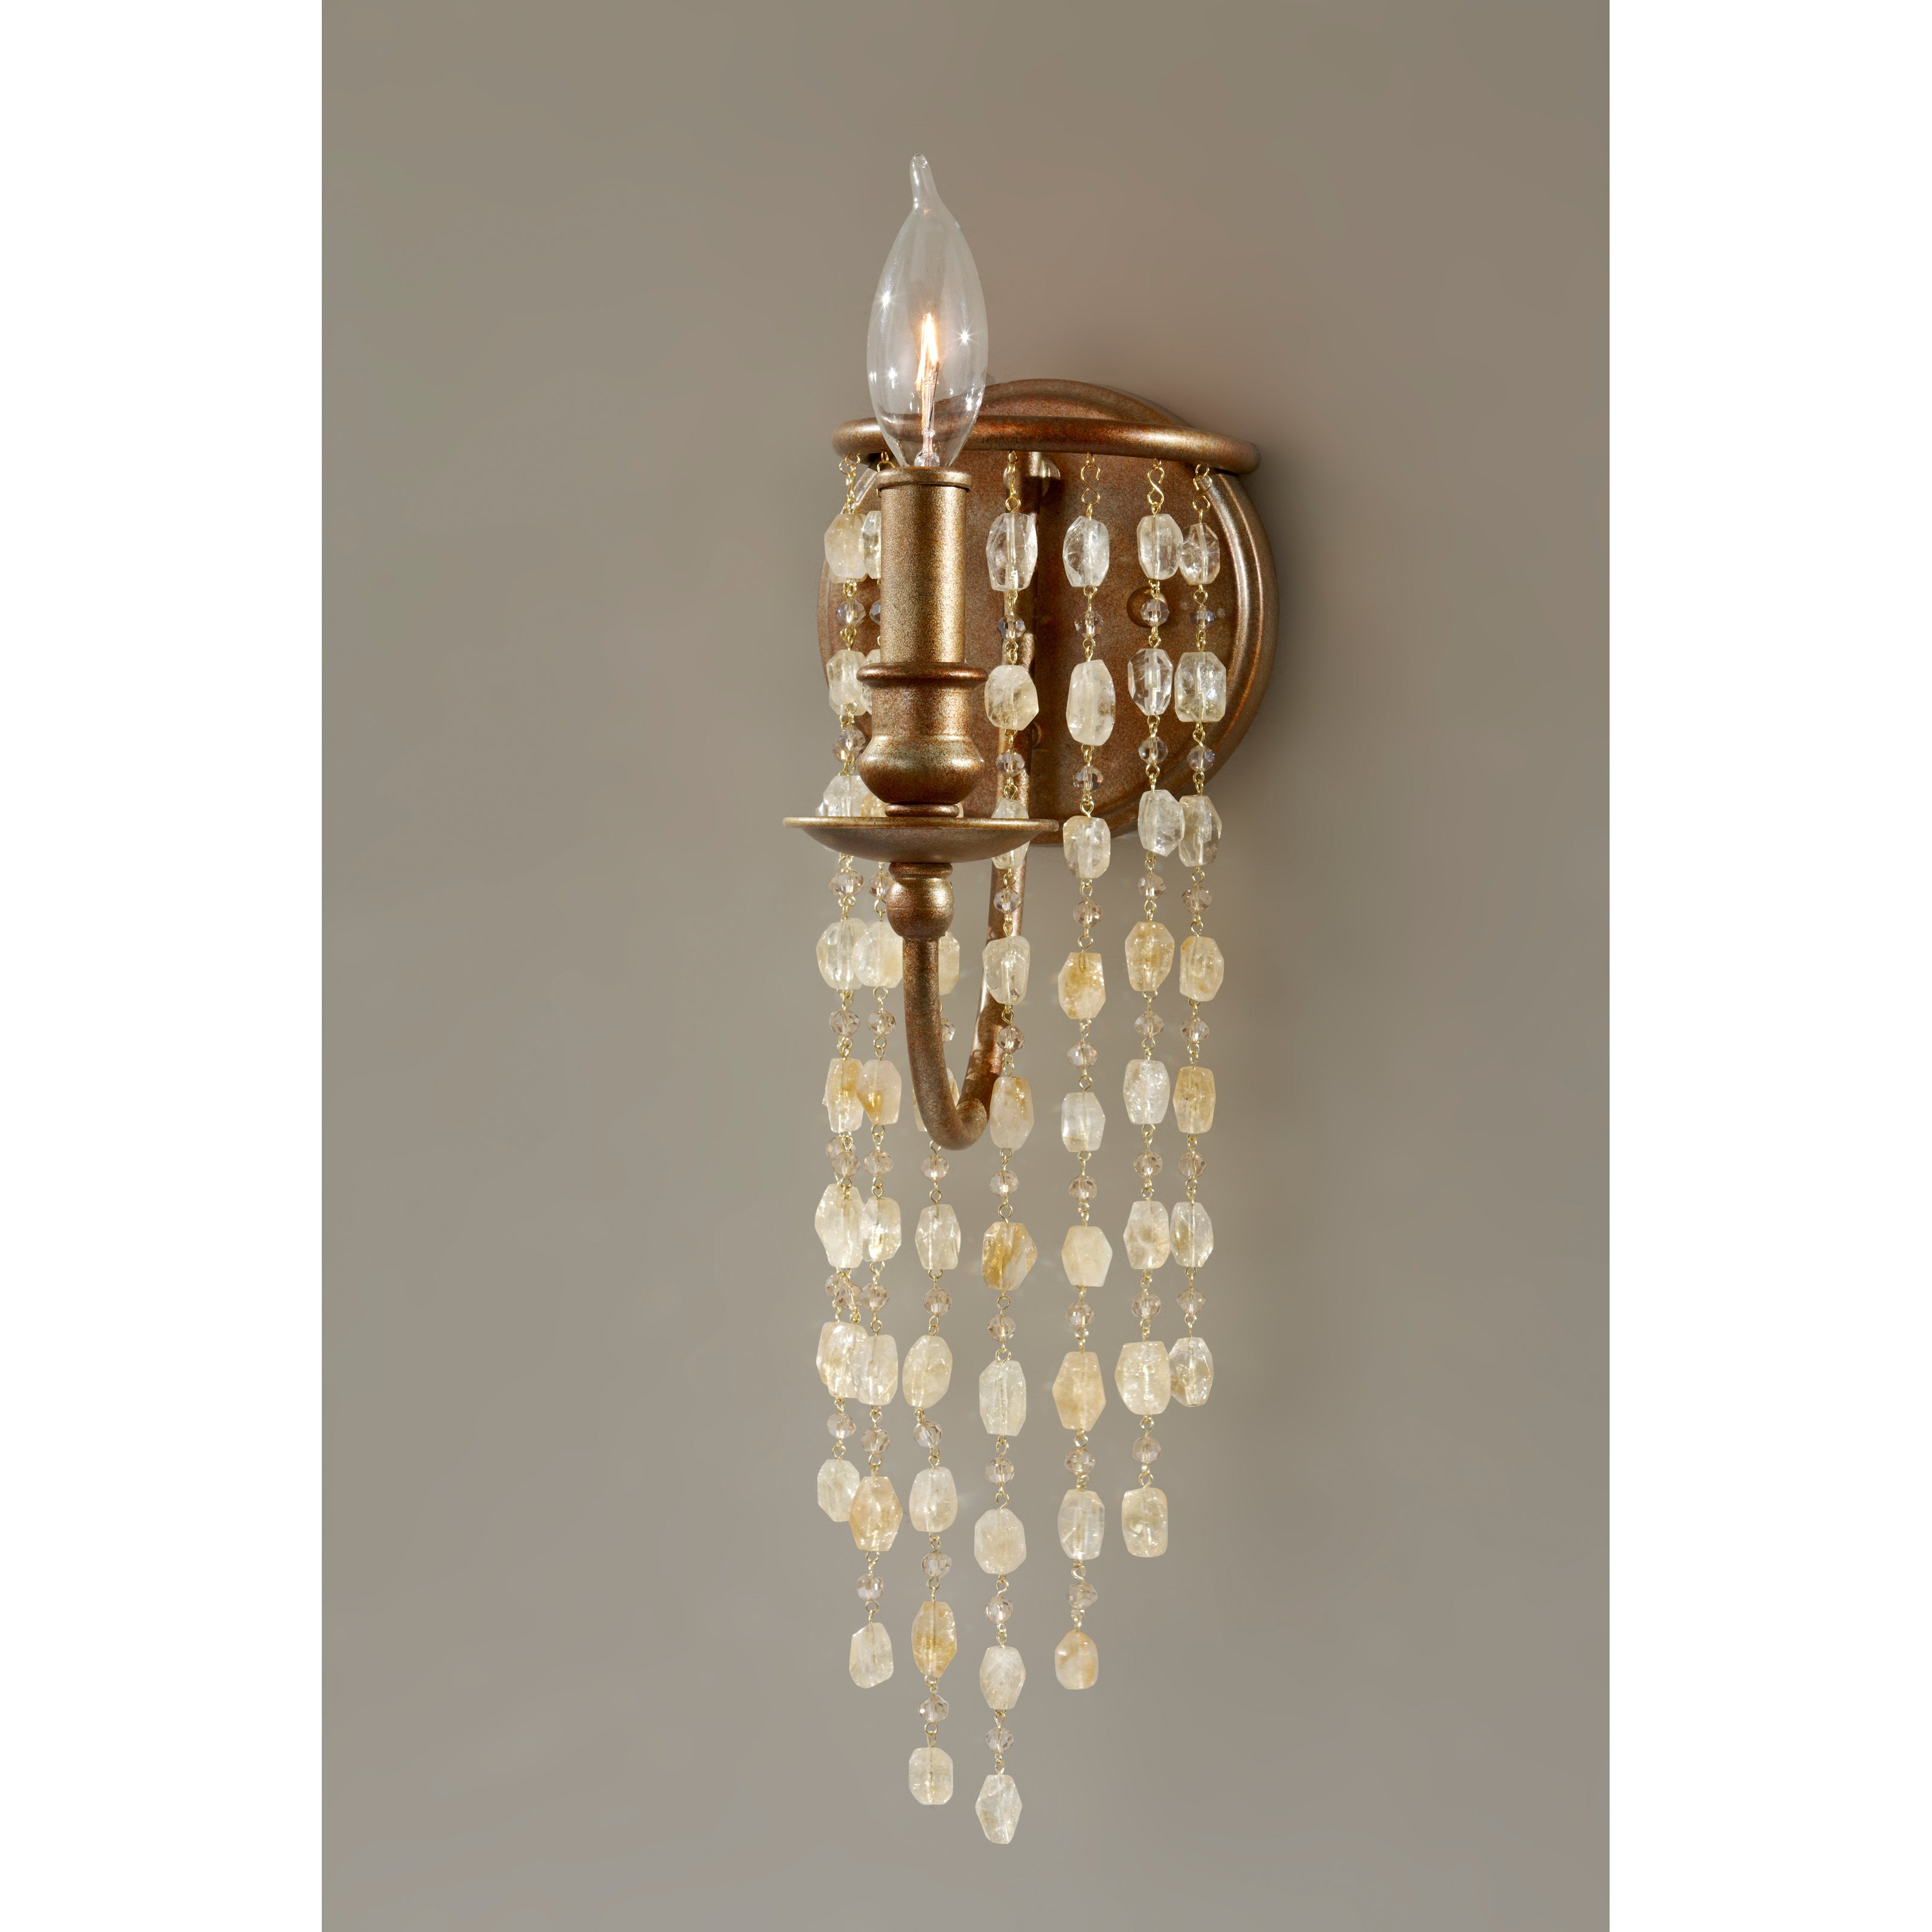 Feiss Aura WB1588RUS Sconce 5.13W in. Rustic Silver by Murray Feiss